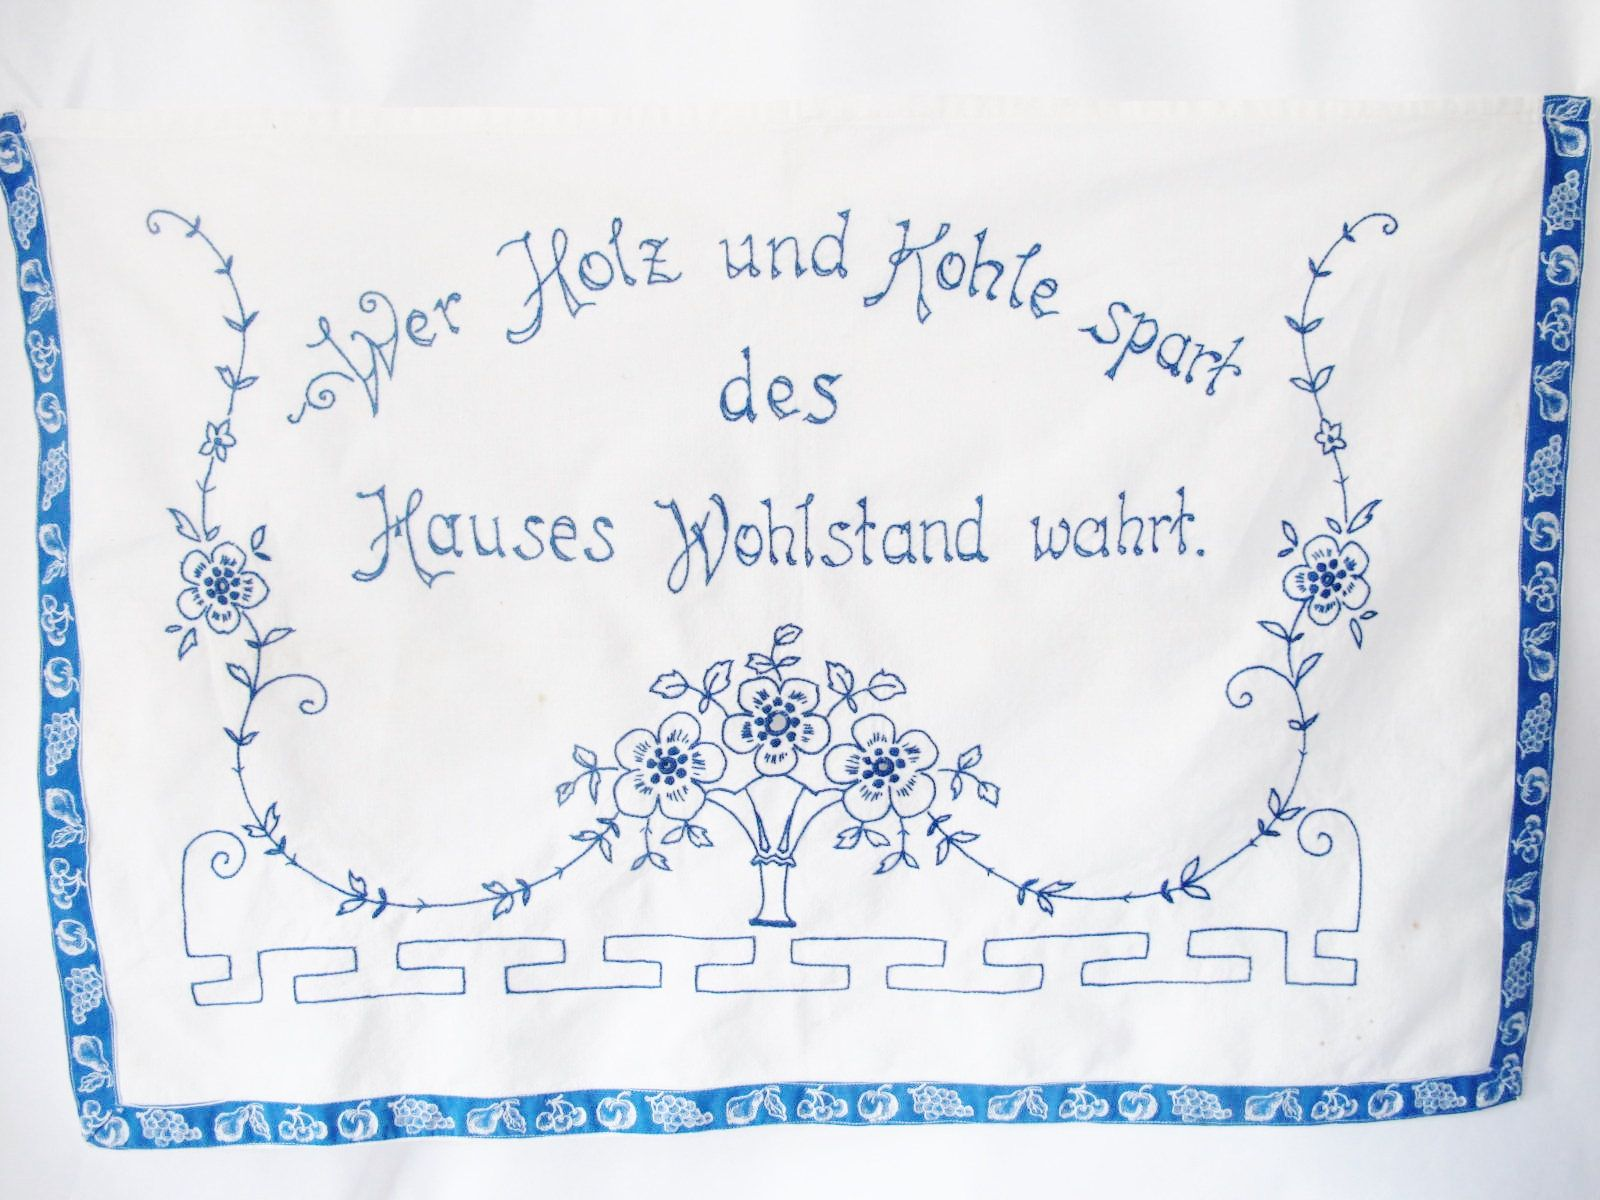 Embroidered Wall Hanging Austrian Viennese Art Nouveau Wood And Coal Kohle Saving Energy 1930s Rhyme By Alpinecou Save Energy Wall Hanging Art Nouveau